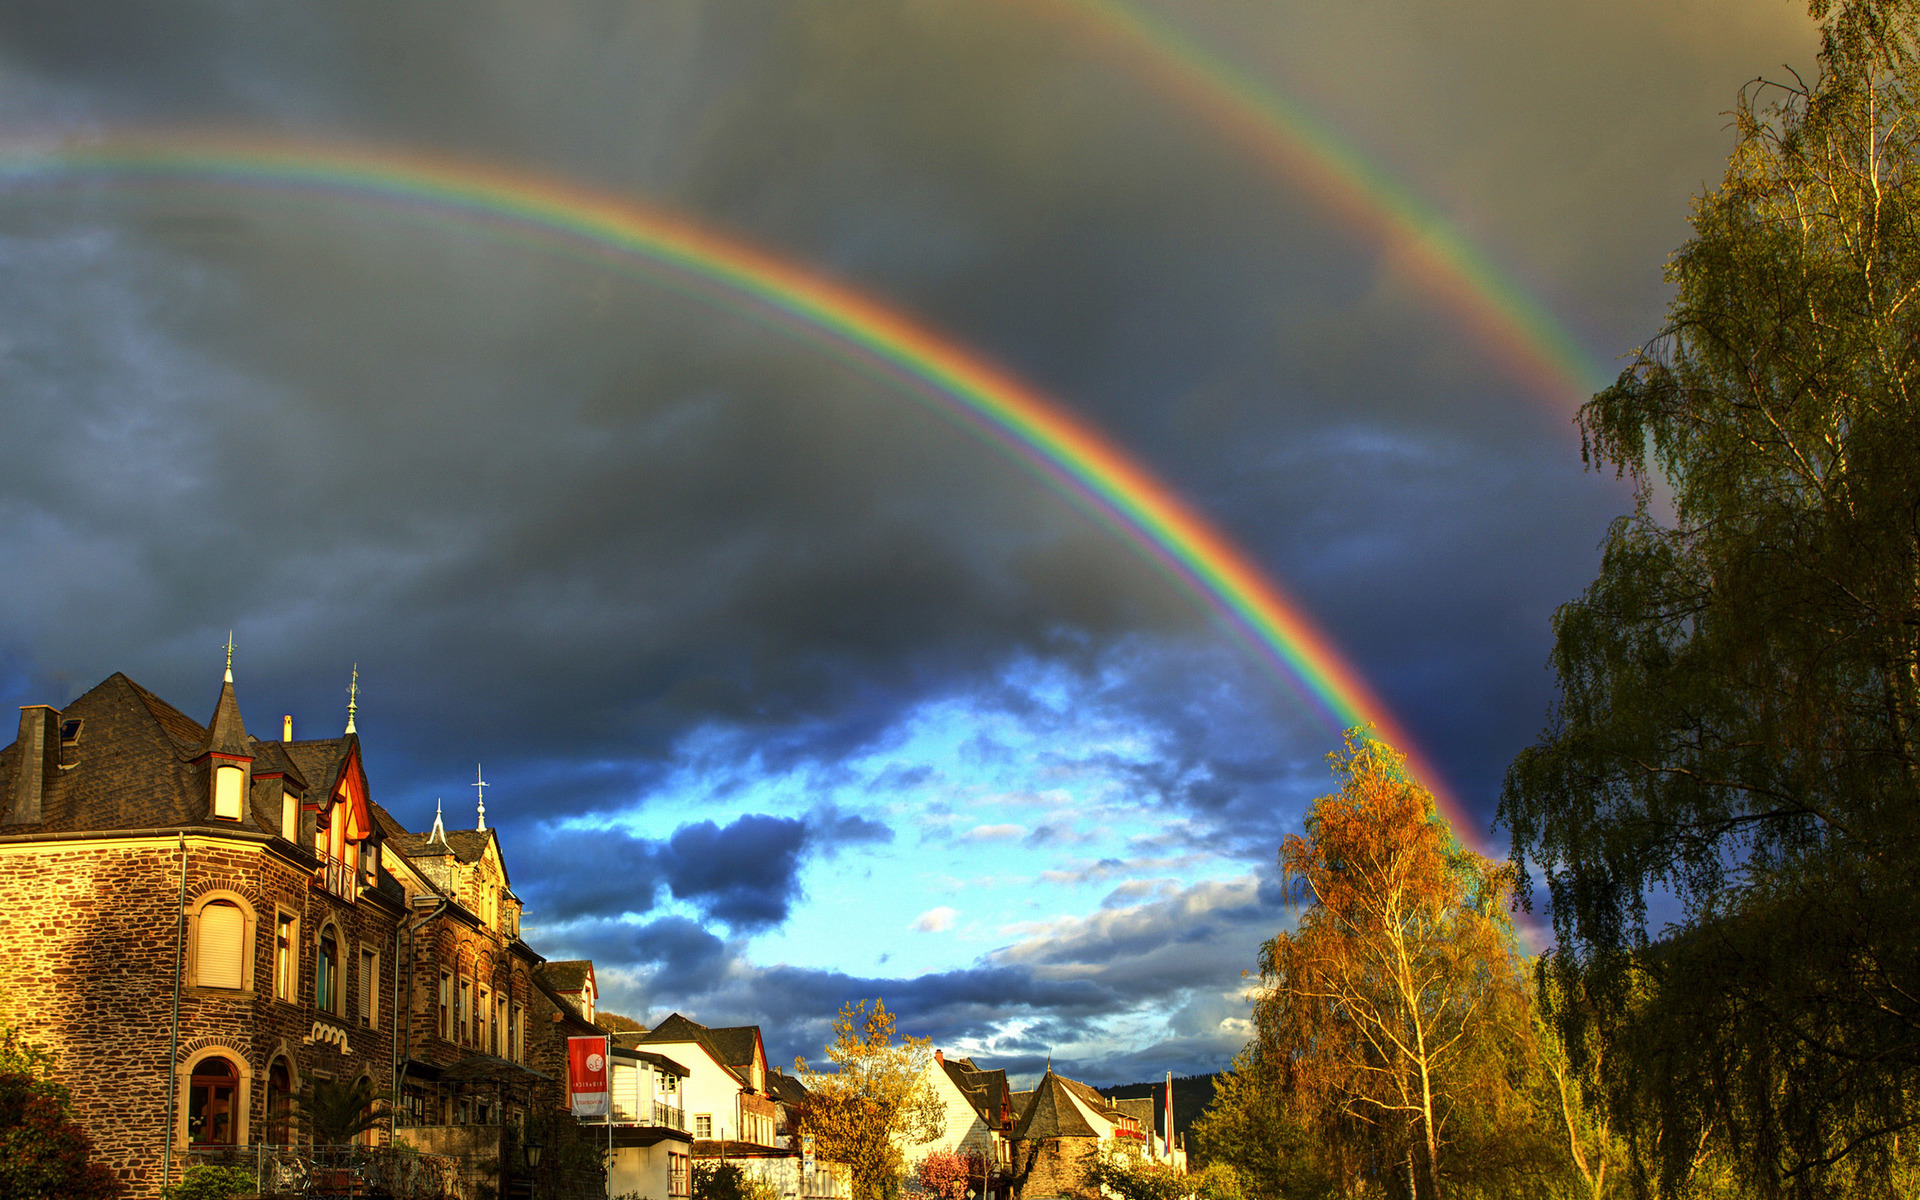 Two Rainbows Over The City